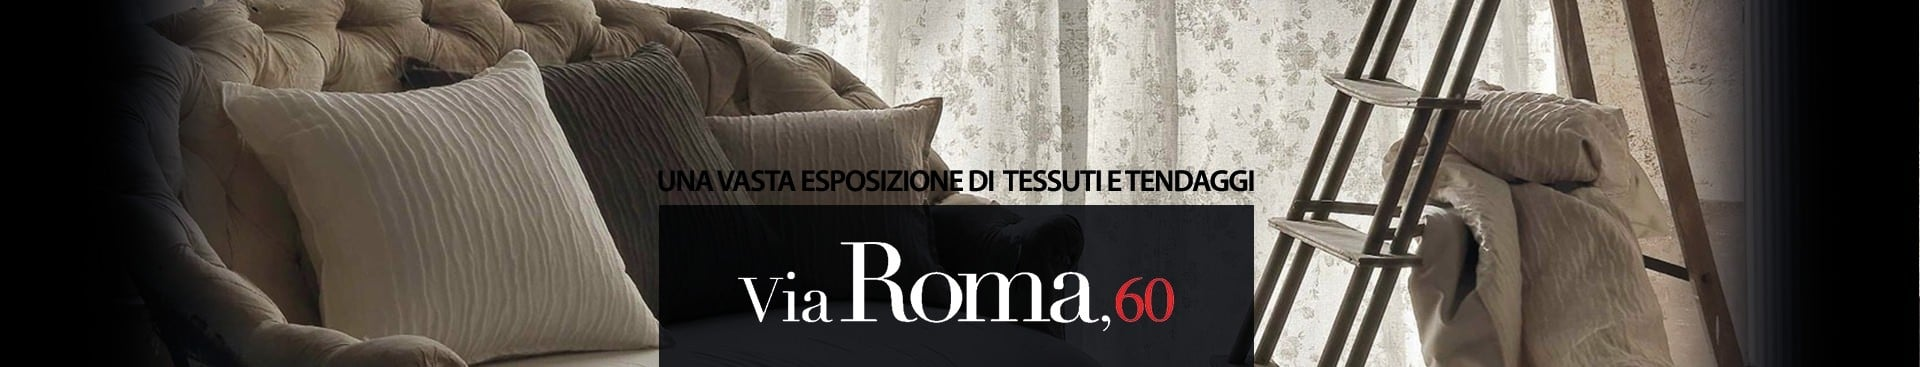 Materassi roma tendaggi via 60 slide